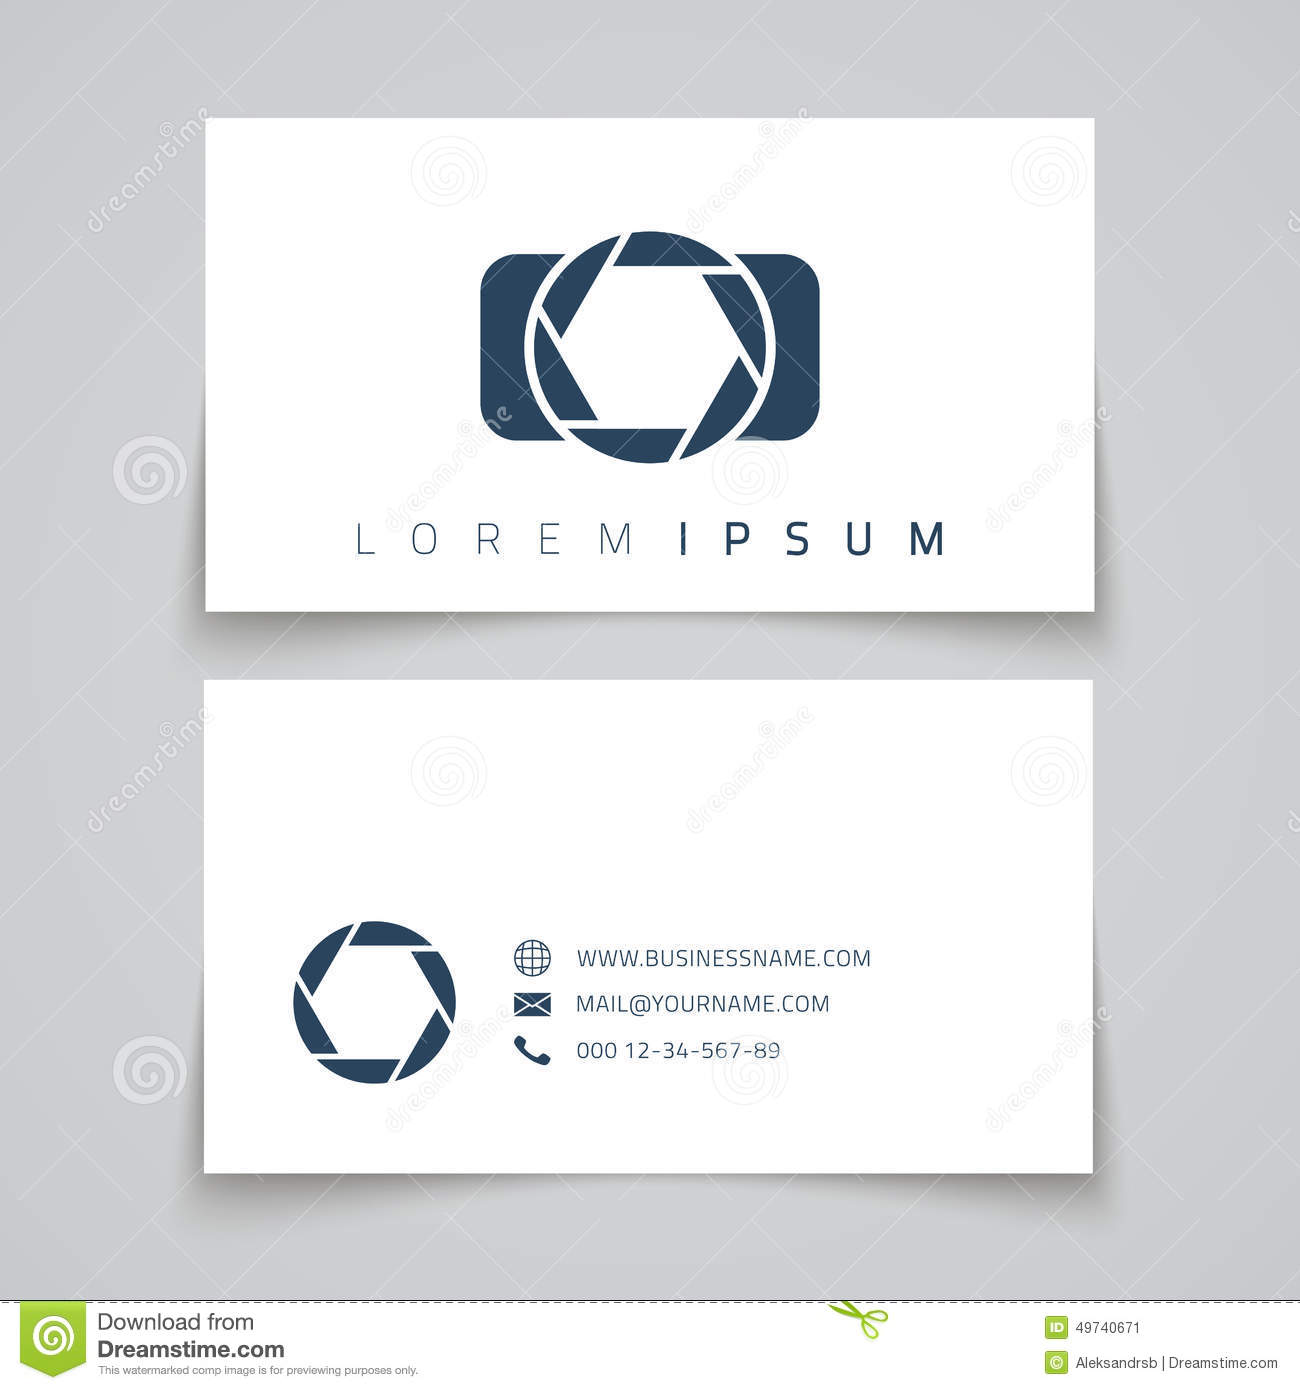 Business card template camera conceptl logo stock vector business card template camera conceptl logo wajeb